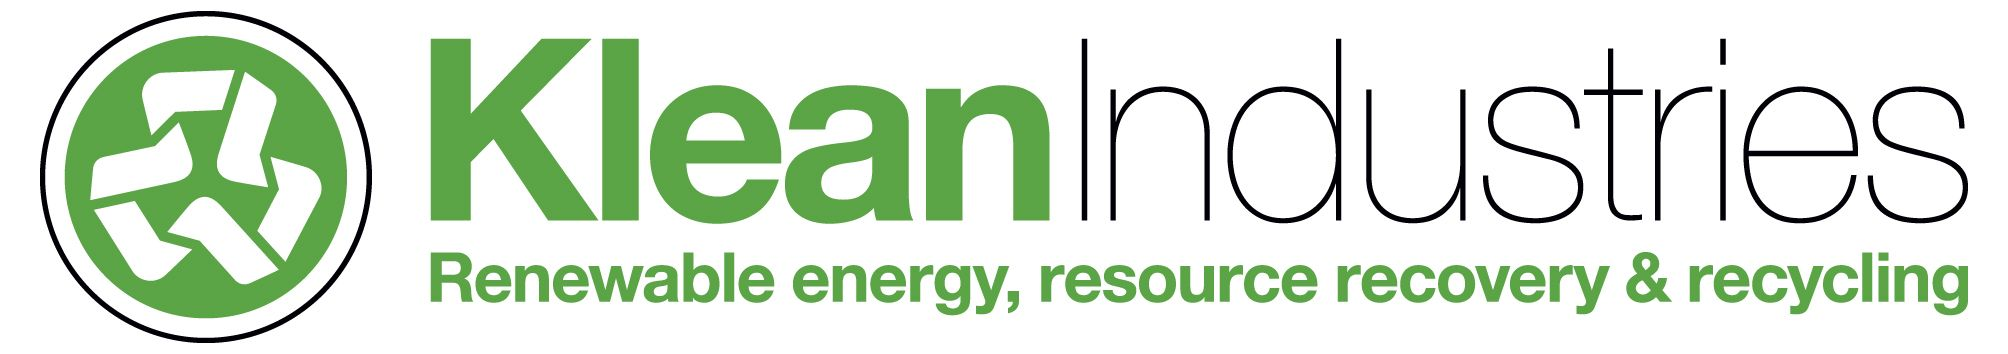 Klean Signs Letter of Intent to Supply 5 Recovered Carbon Black Upgrading Facilities in India